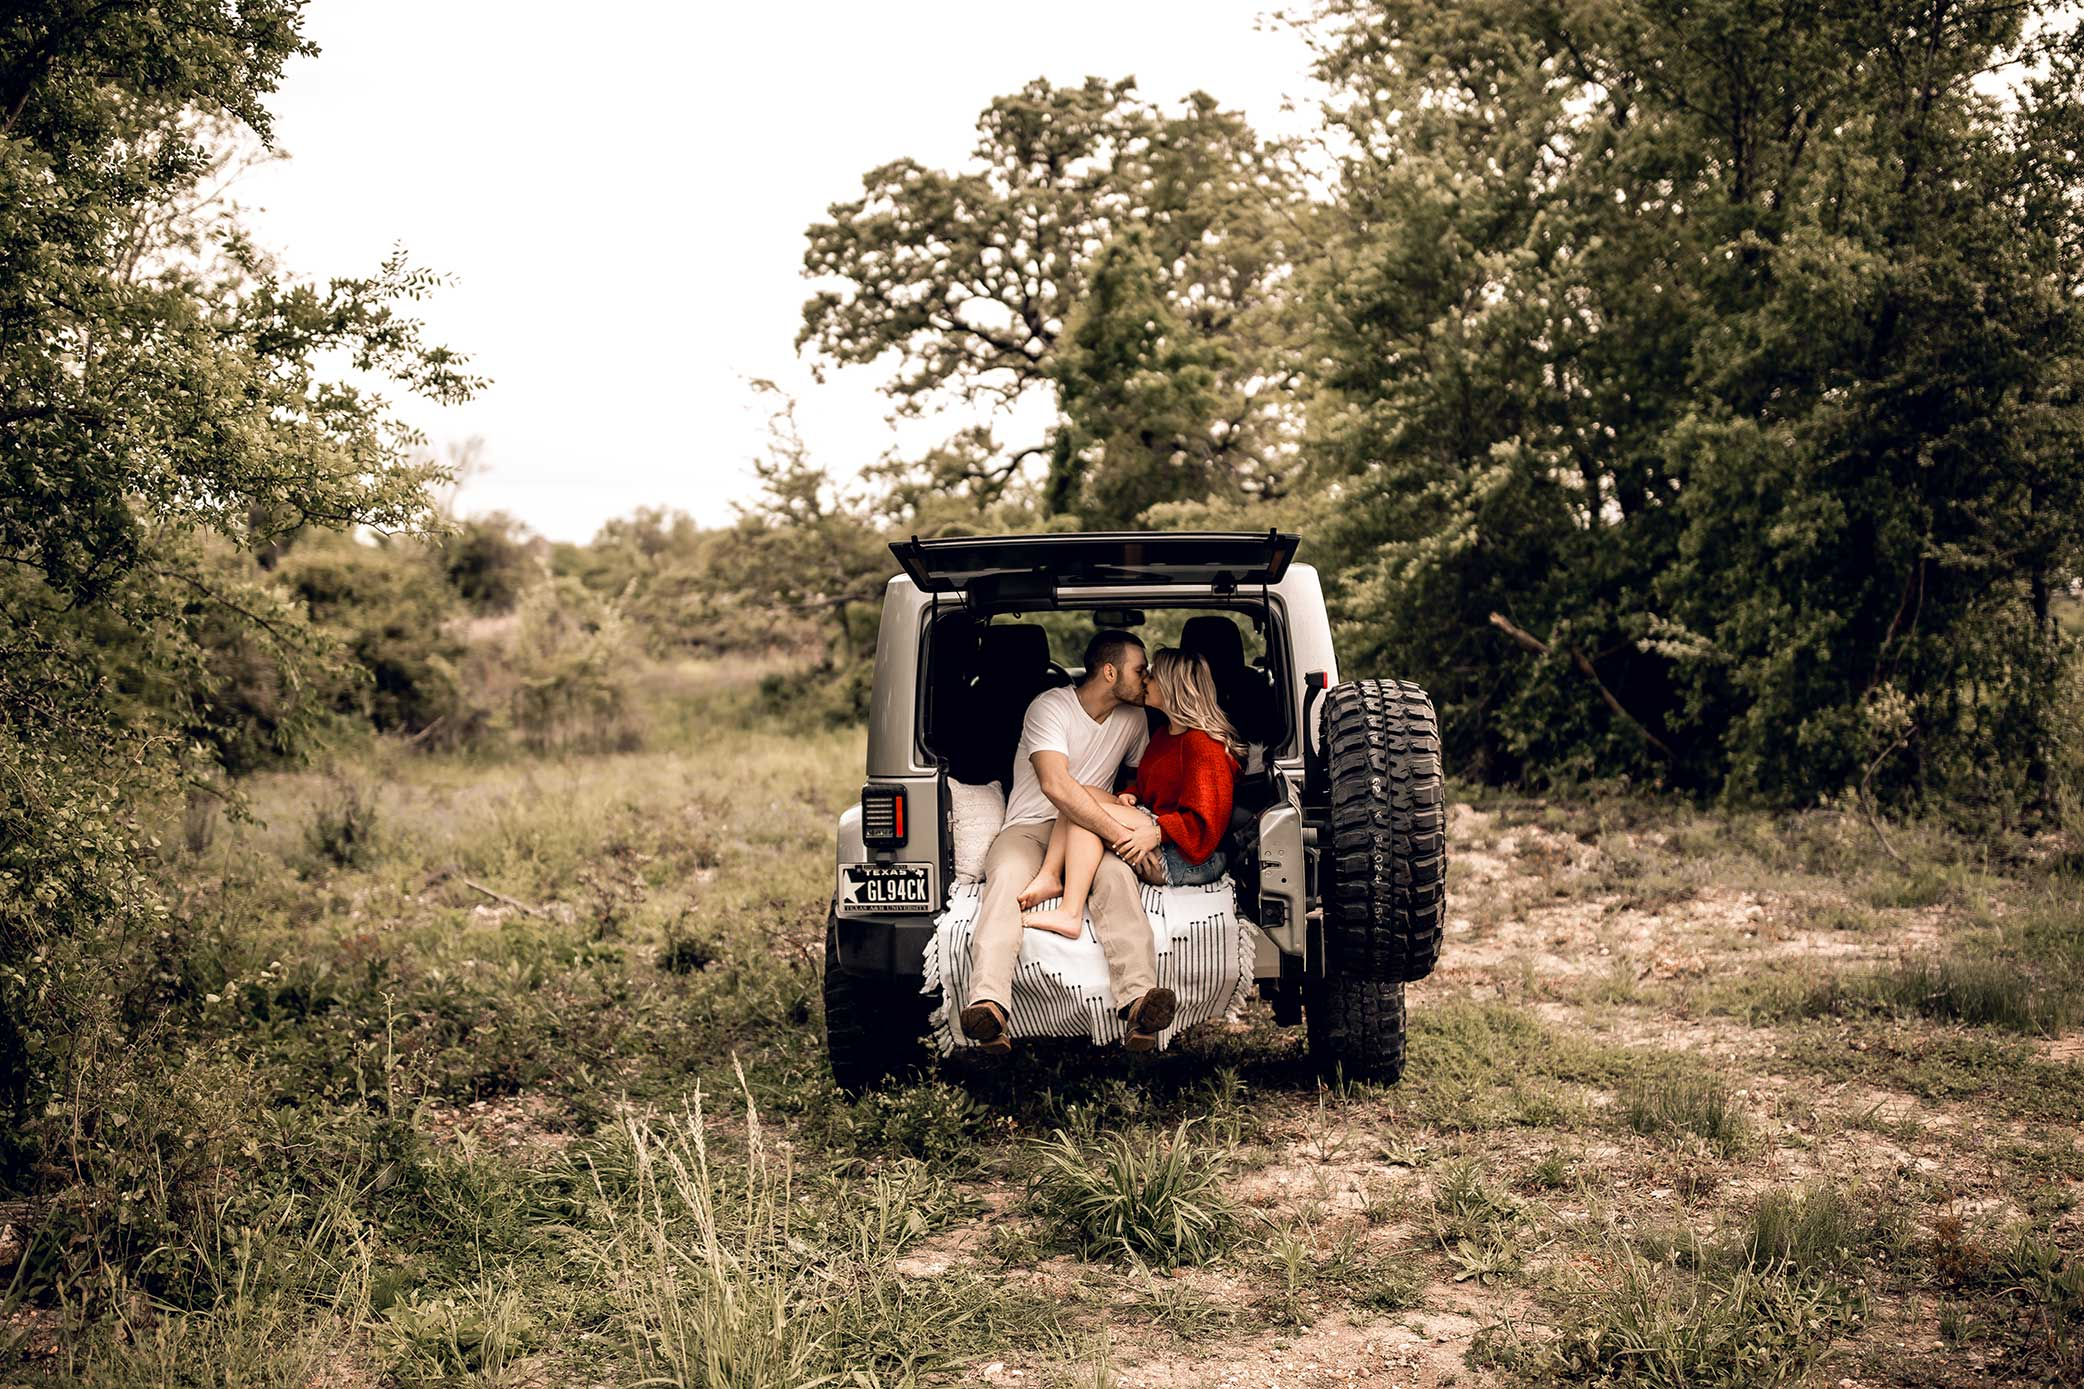 shelby-schiller-photography-lifestyle-couples-remi-colt-outdoor-jeep-adventure-26.jpg